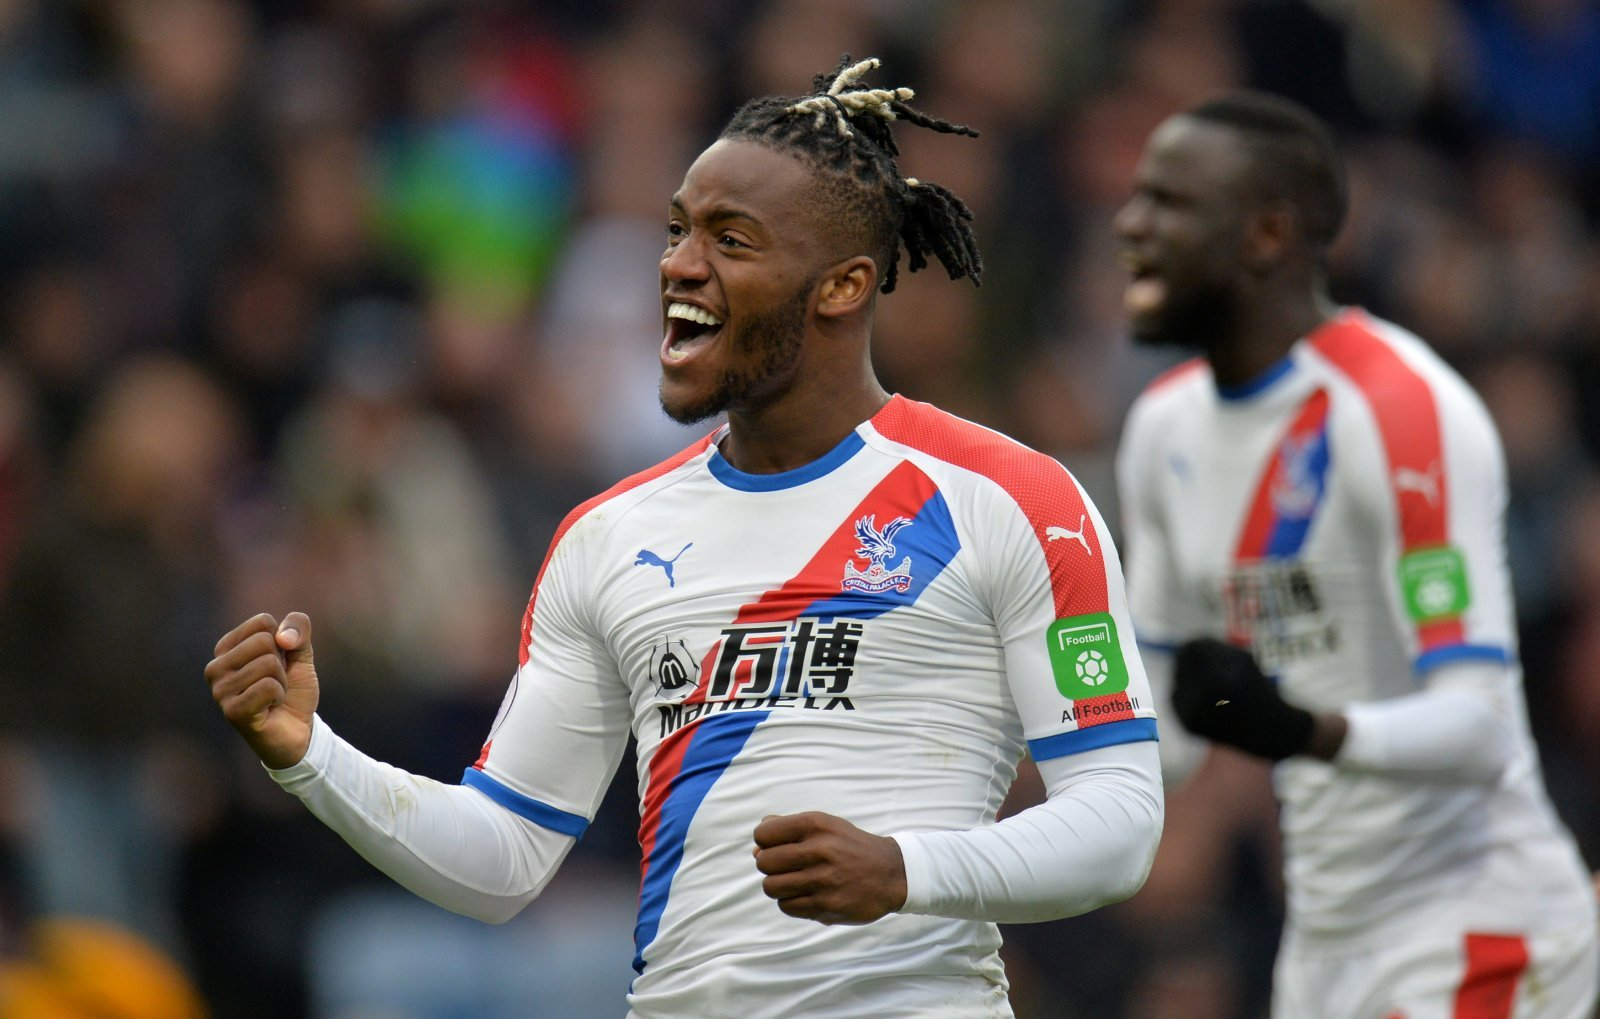 Michy Batshuayi can give Palace long-term Premier League security